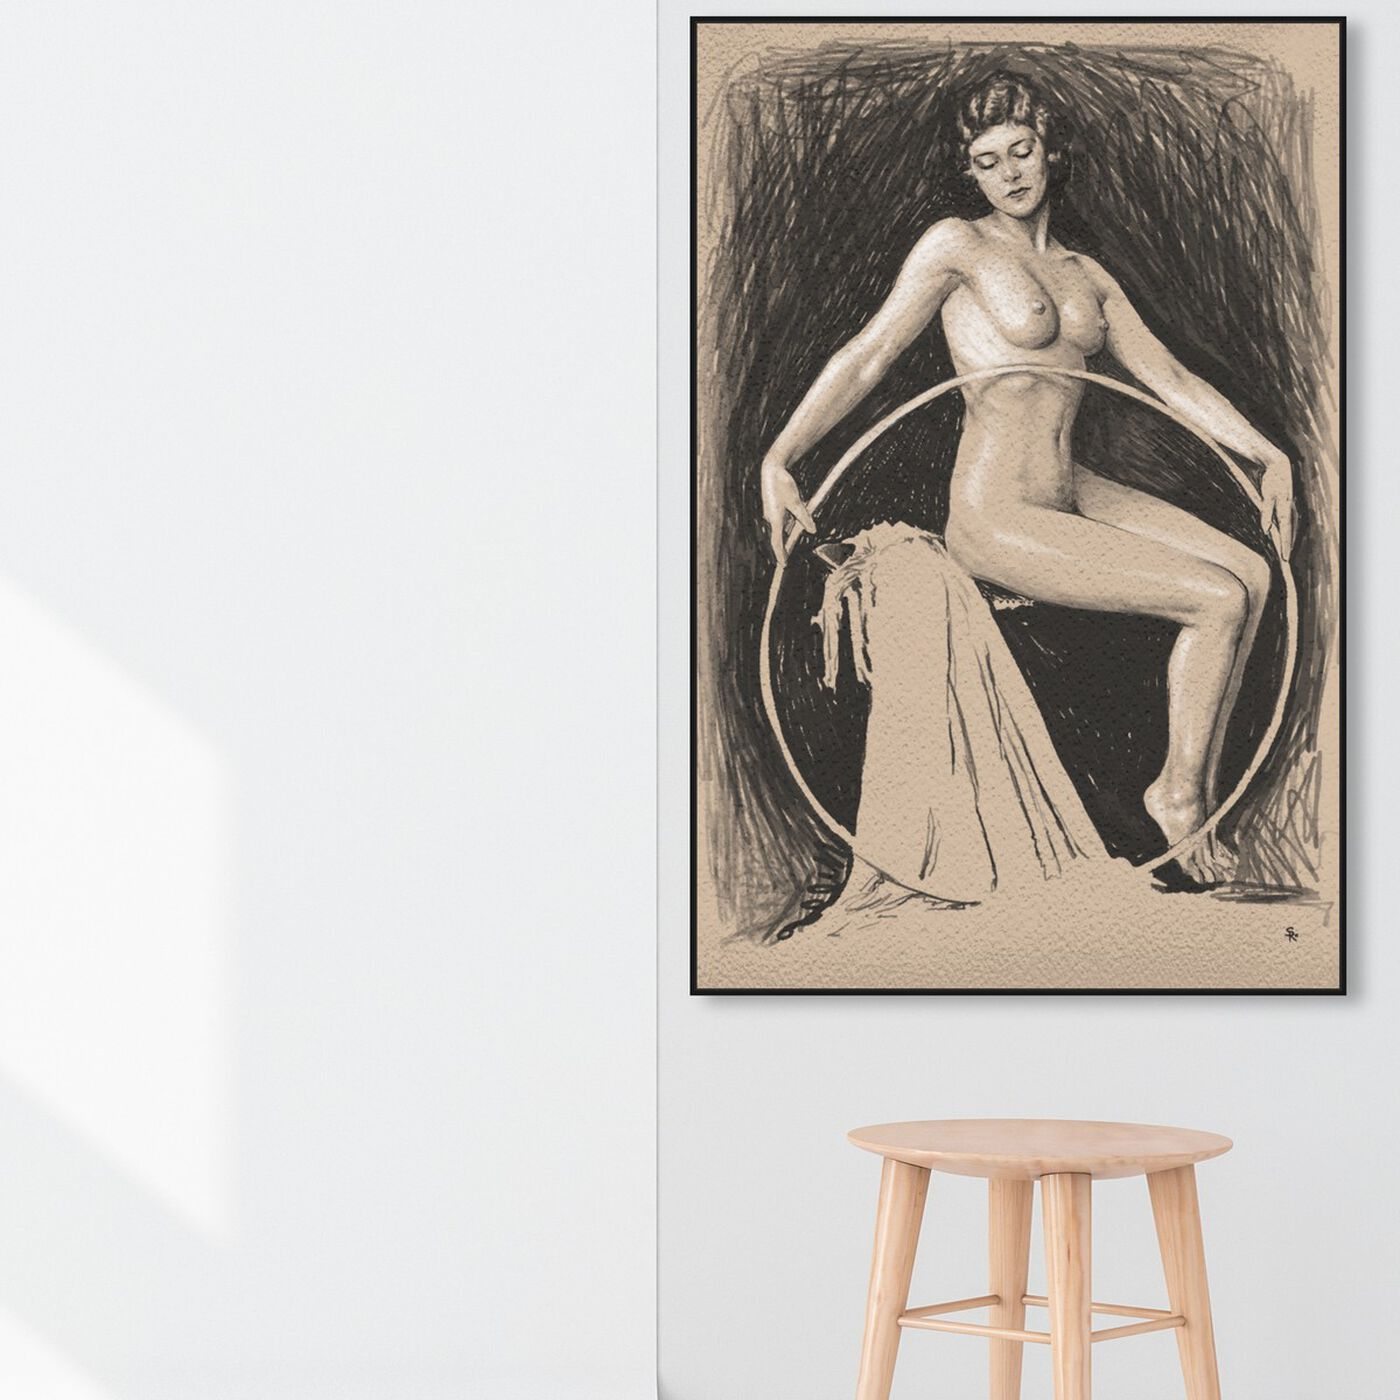 Hanging view of Nude Woman with Hoop featuring classic and figurative and nudes art.